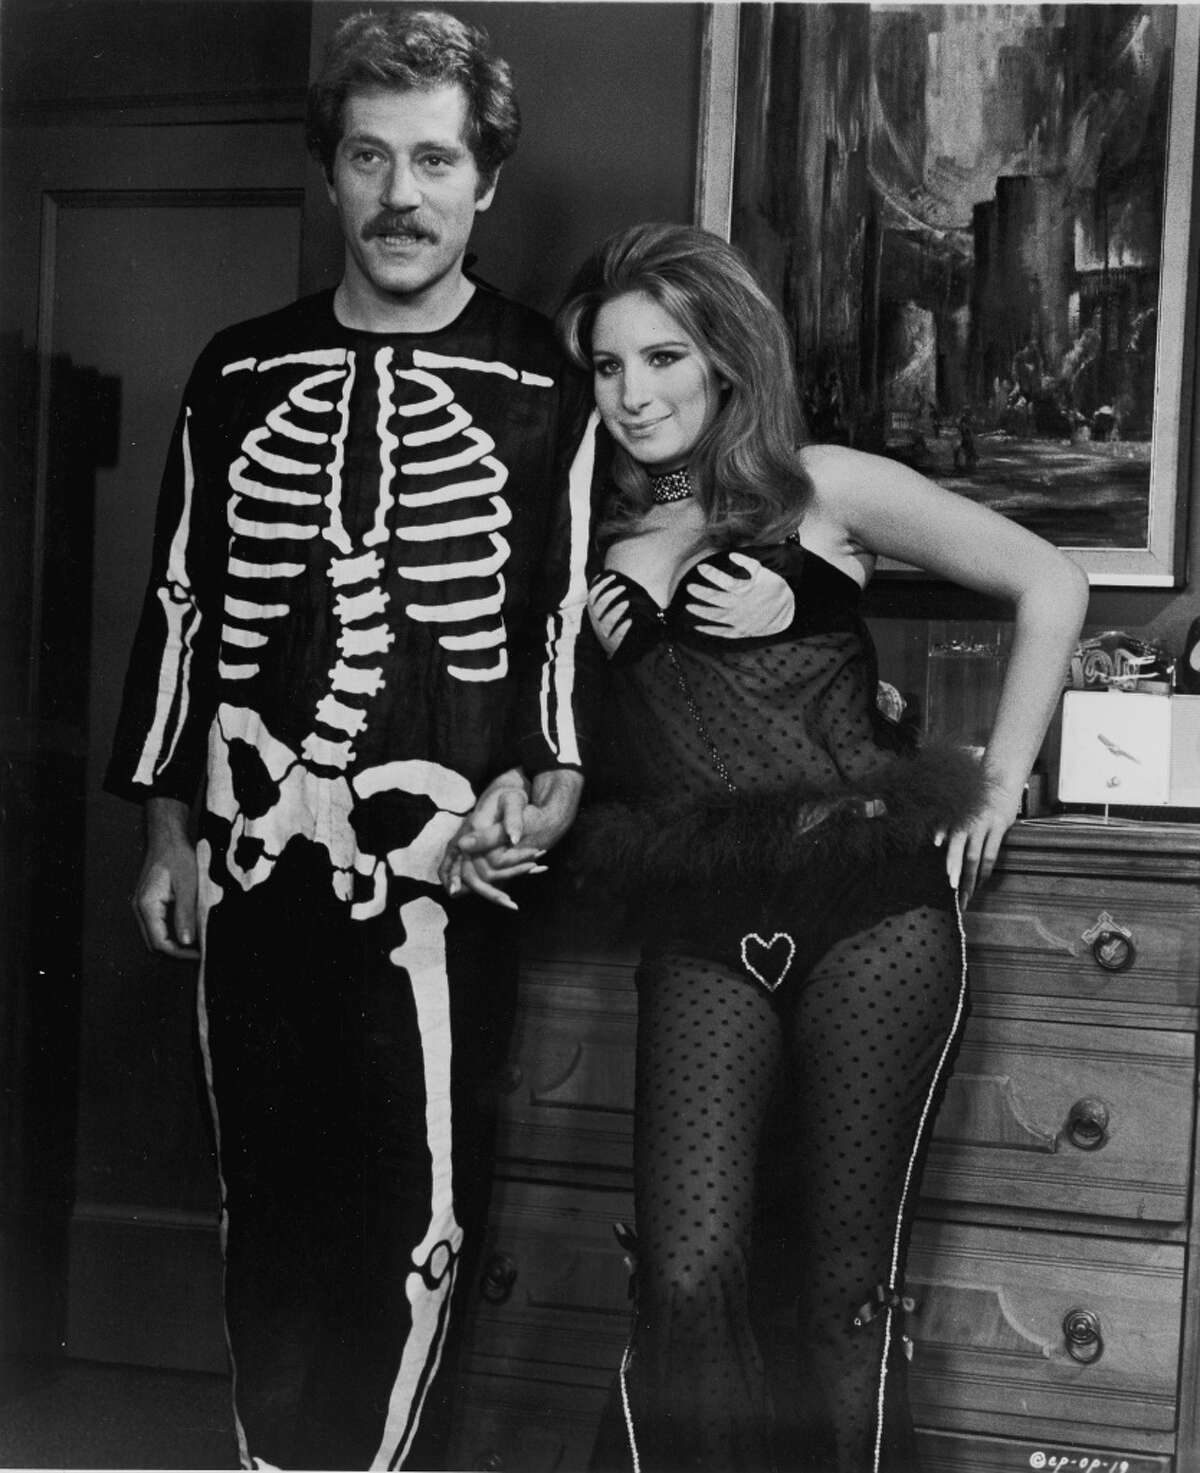 1970: American actors George Segal and Barbra Streisand hold hands, wearing Halloween costumes, in a still from the film, 'The Owl And The Pussycat,' directed by Herbert Ross, 1970.